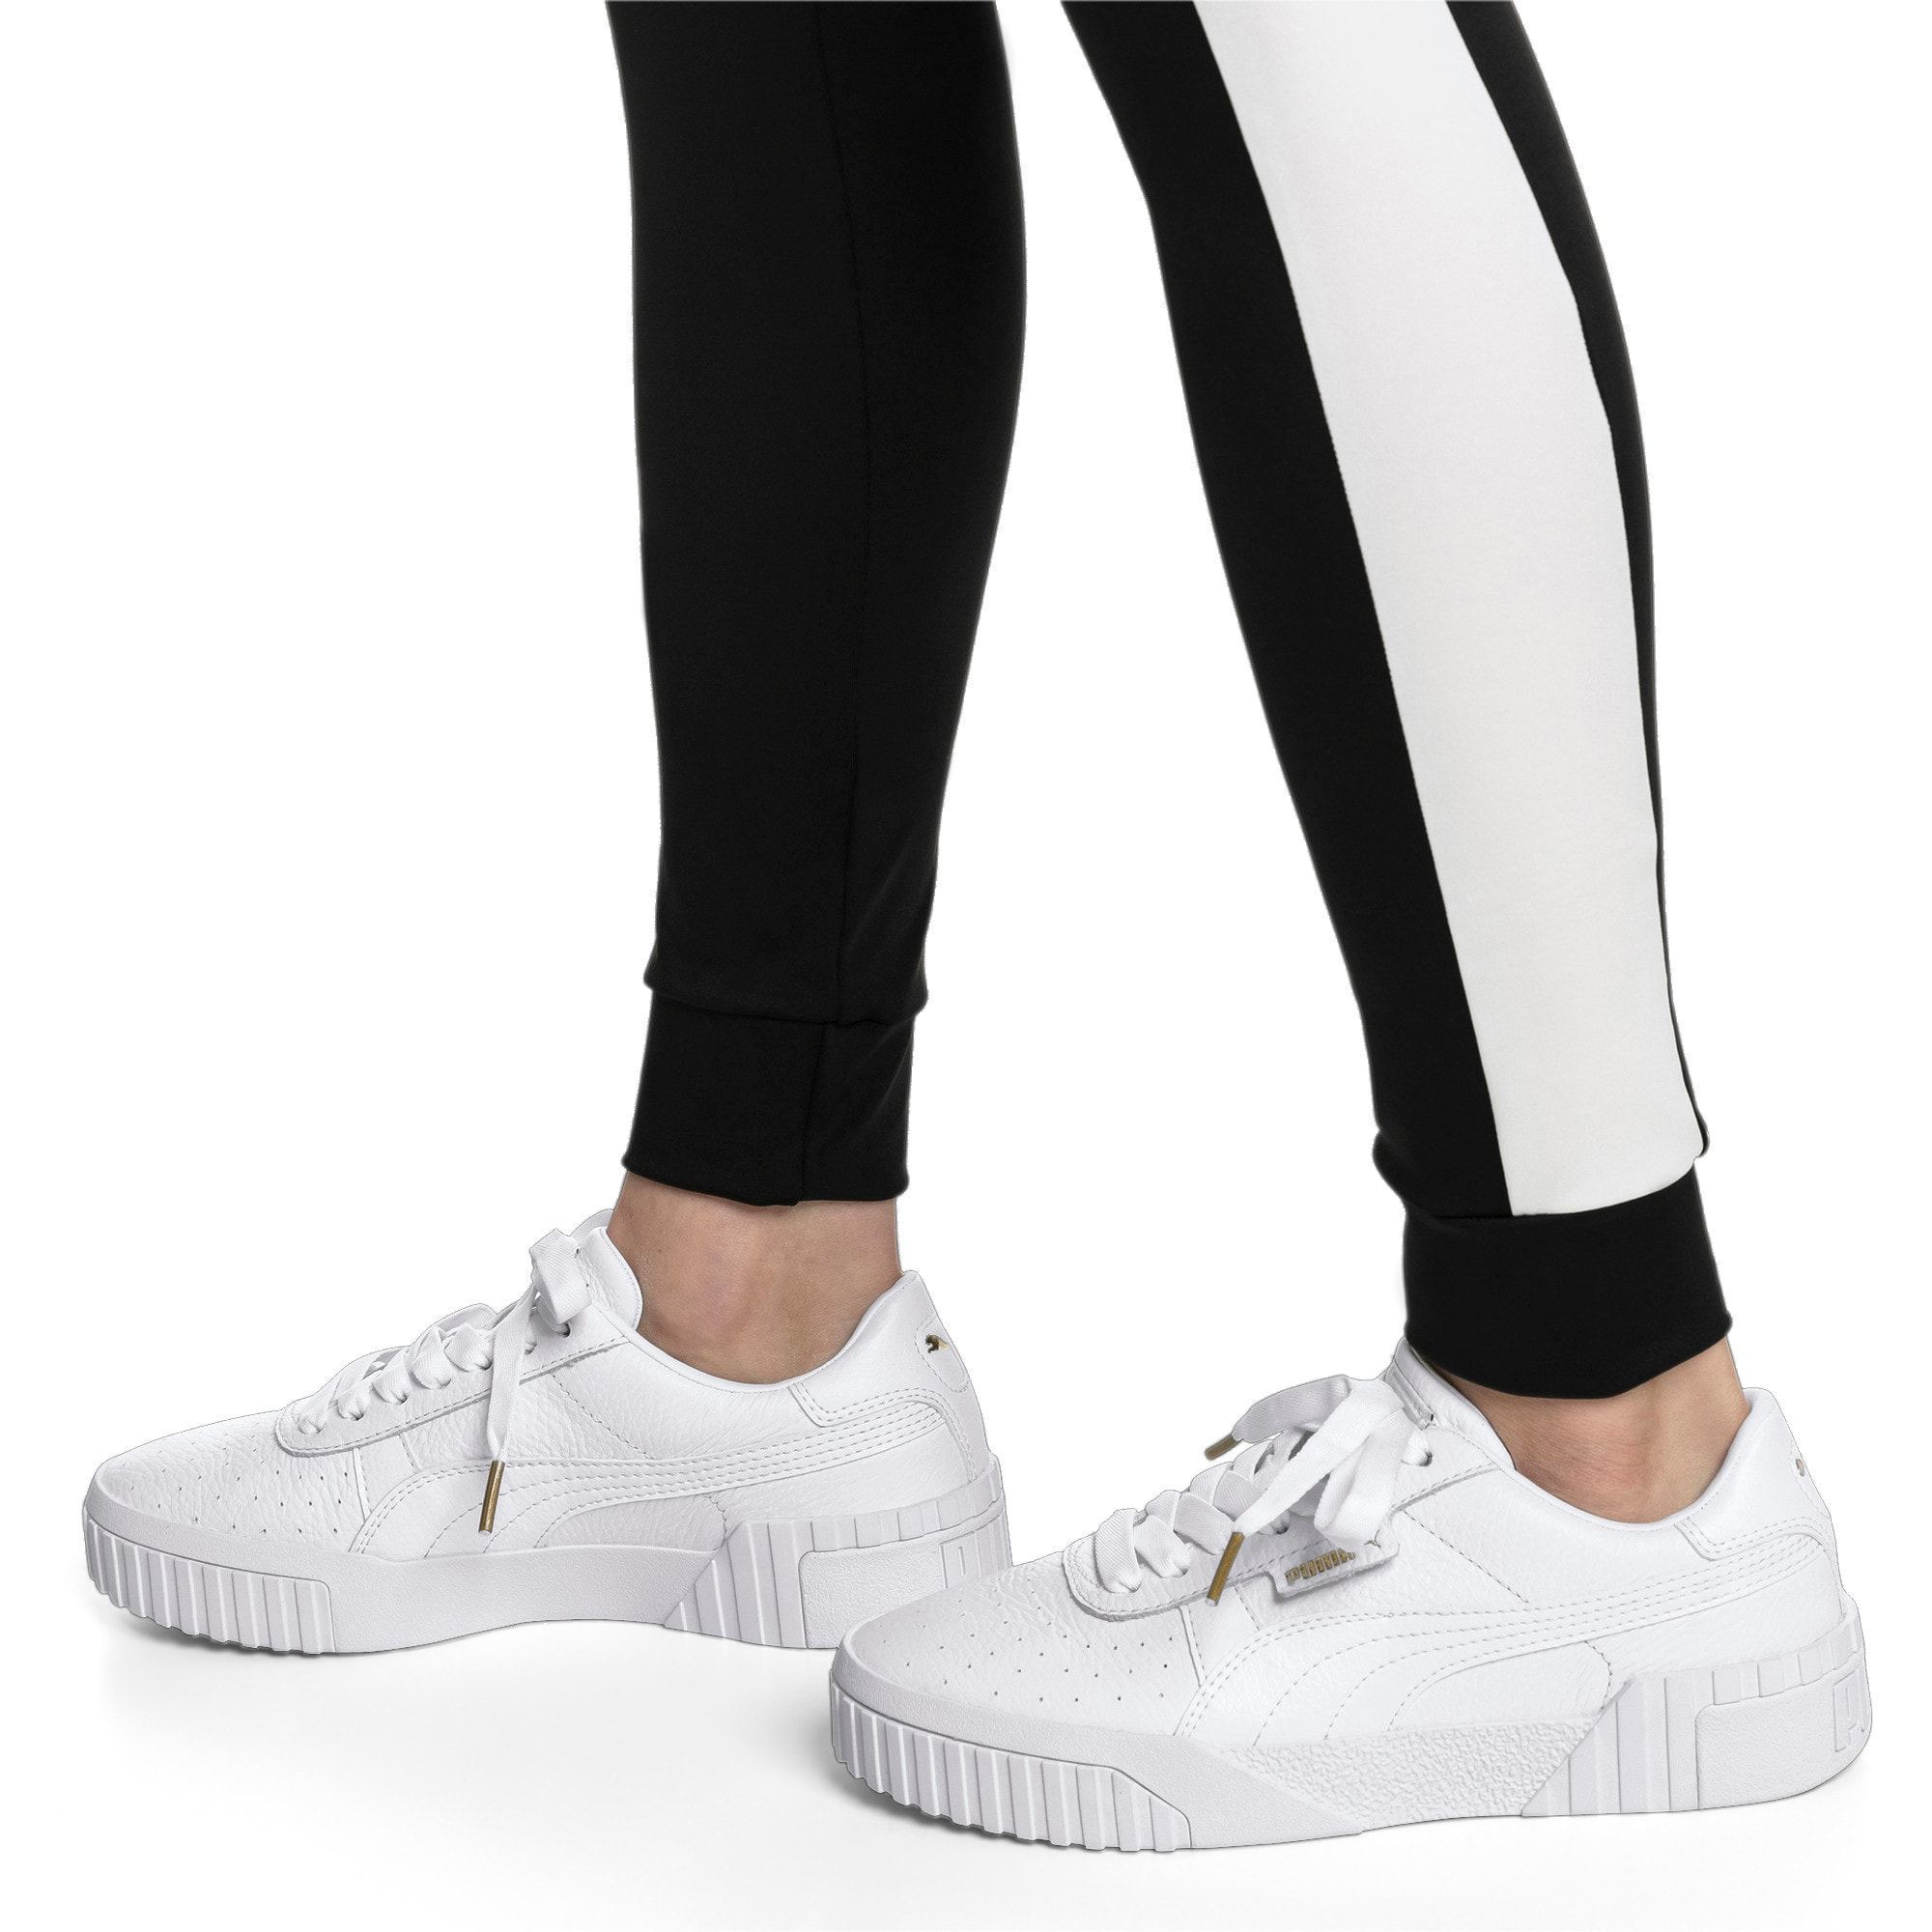 save up to 60% crazy price new style & luxury Cali Women's Trainers